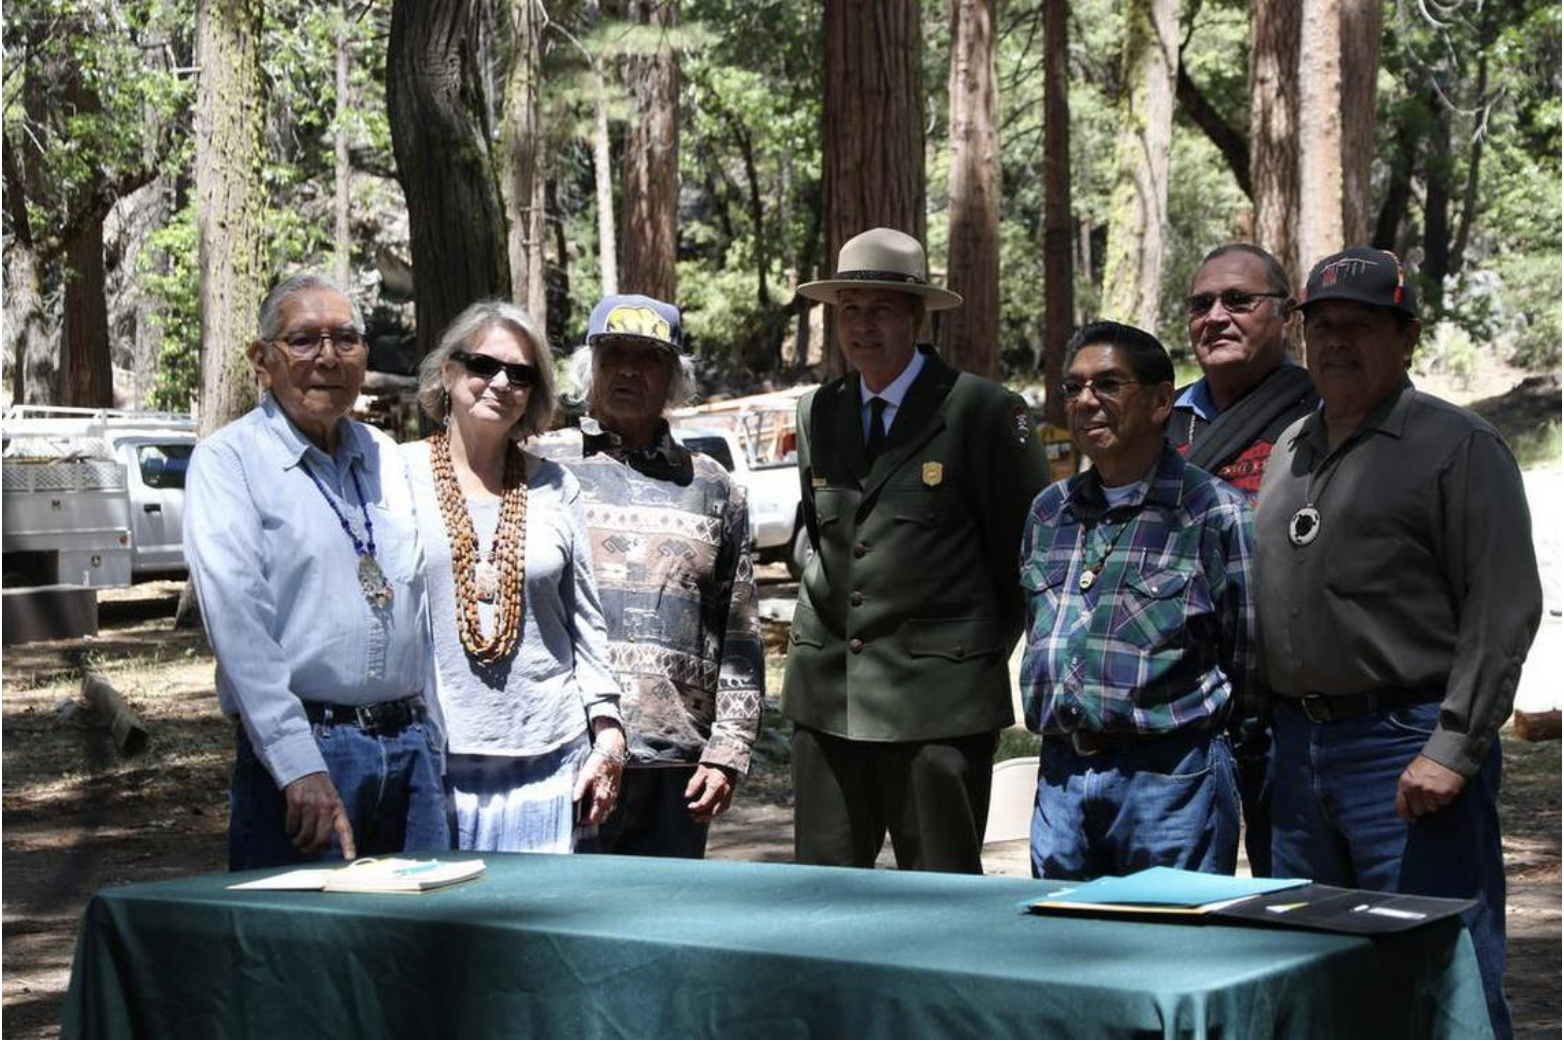 Superintendent Michael Douglas poses with members of the Mariposa Indian Council after returning possession of the Indian Village back to the council.